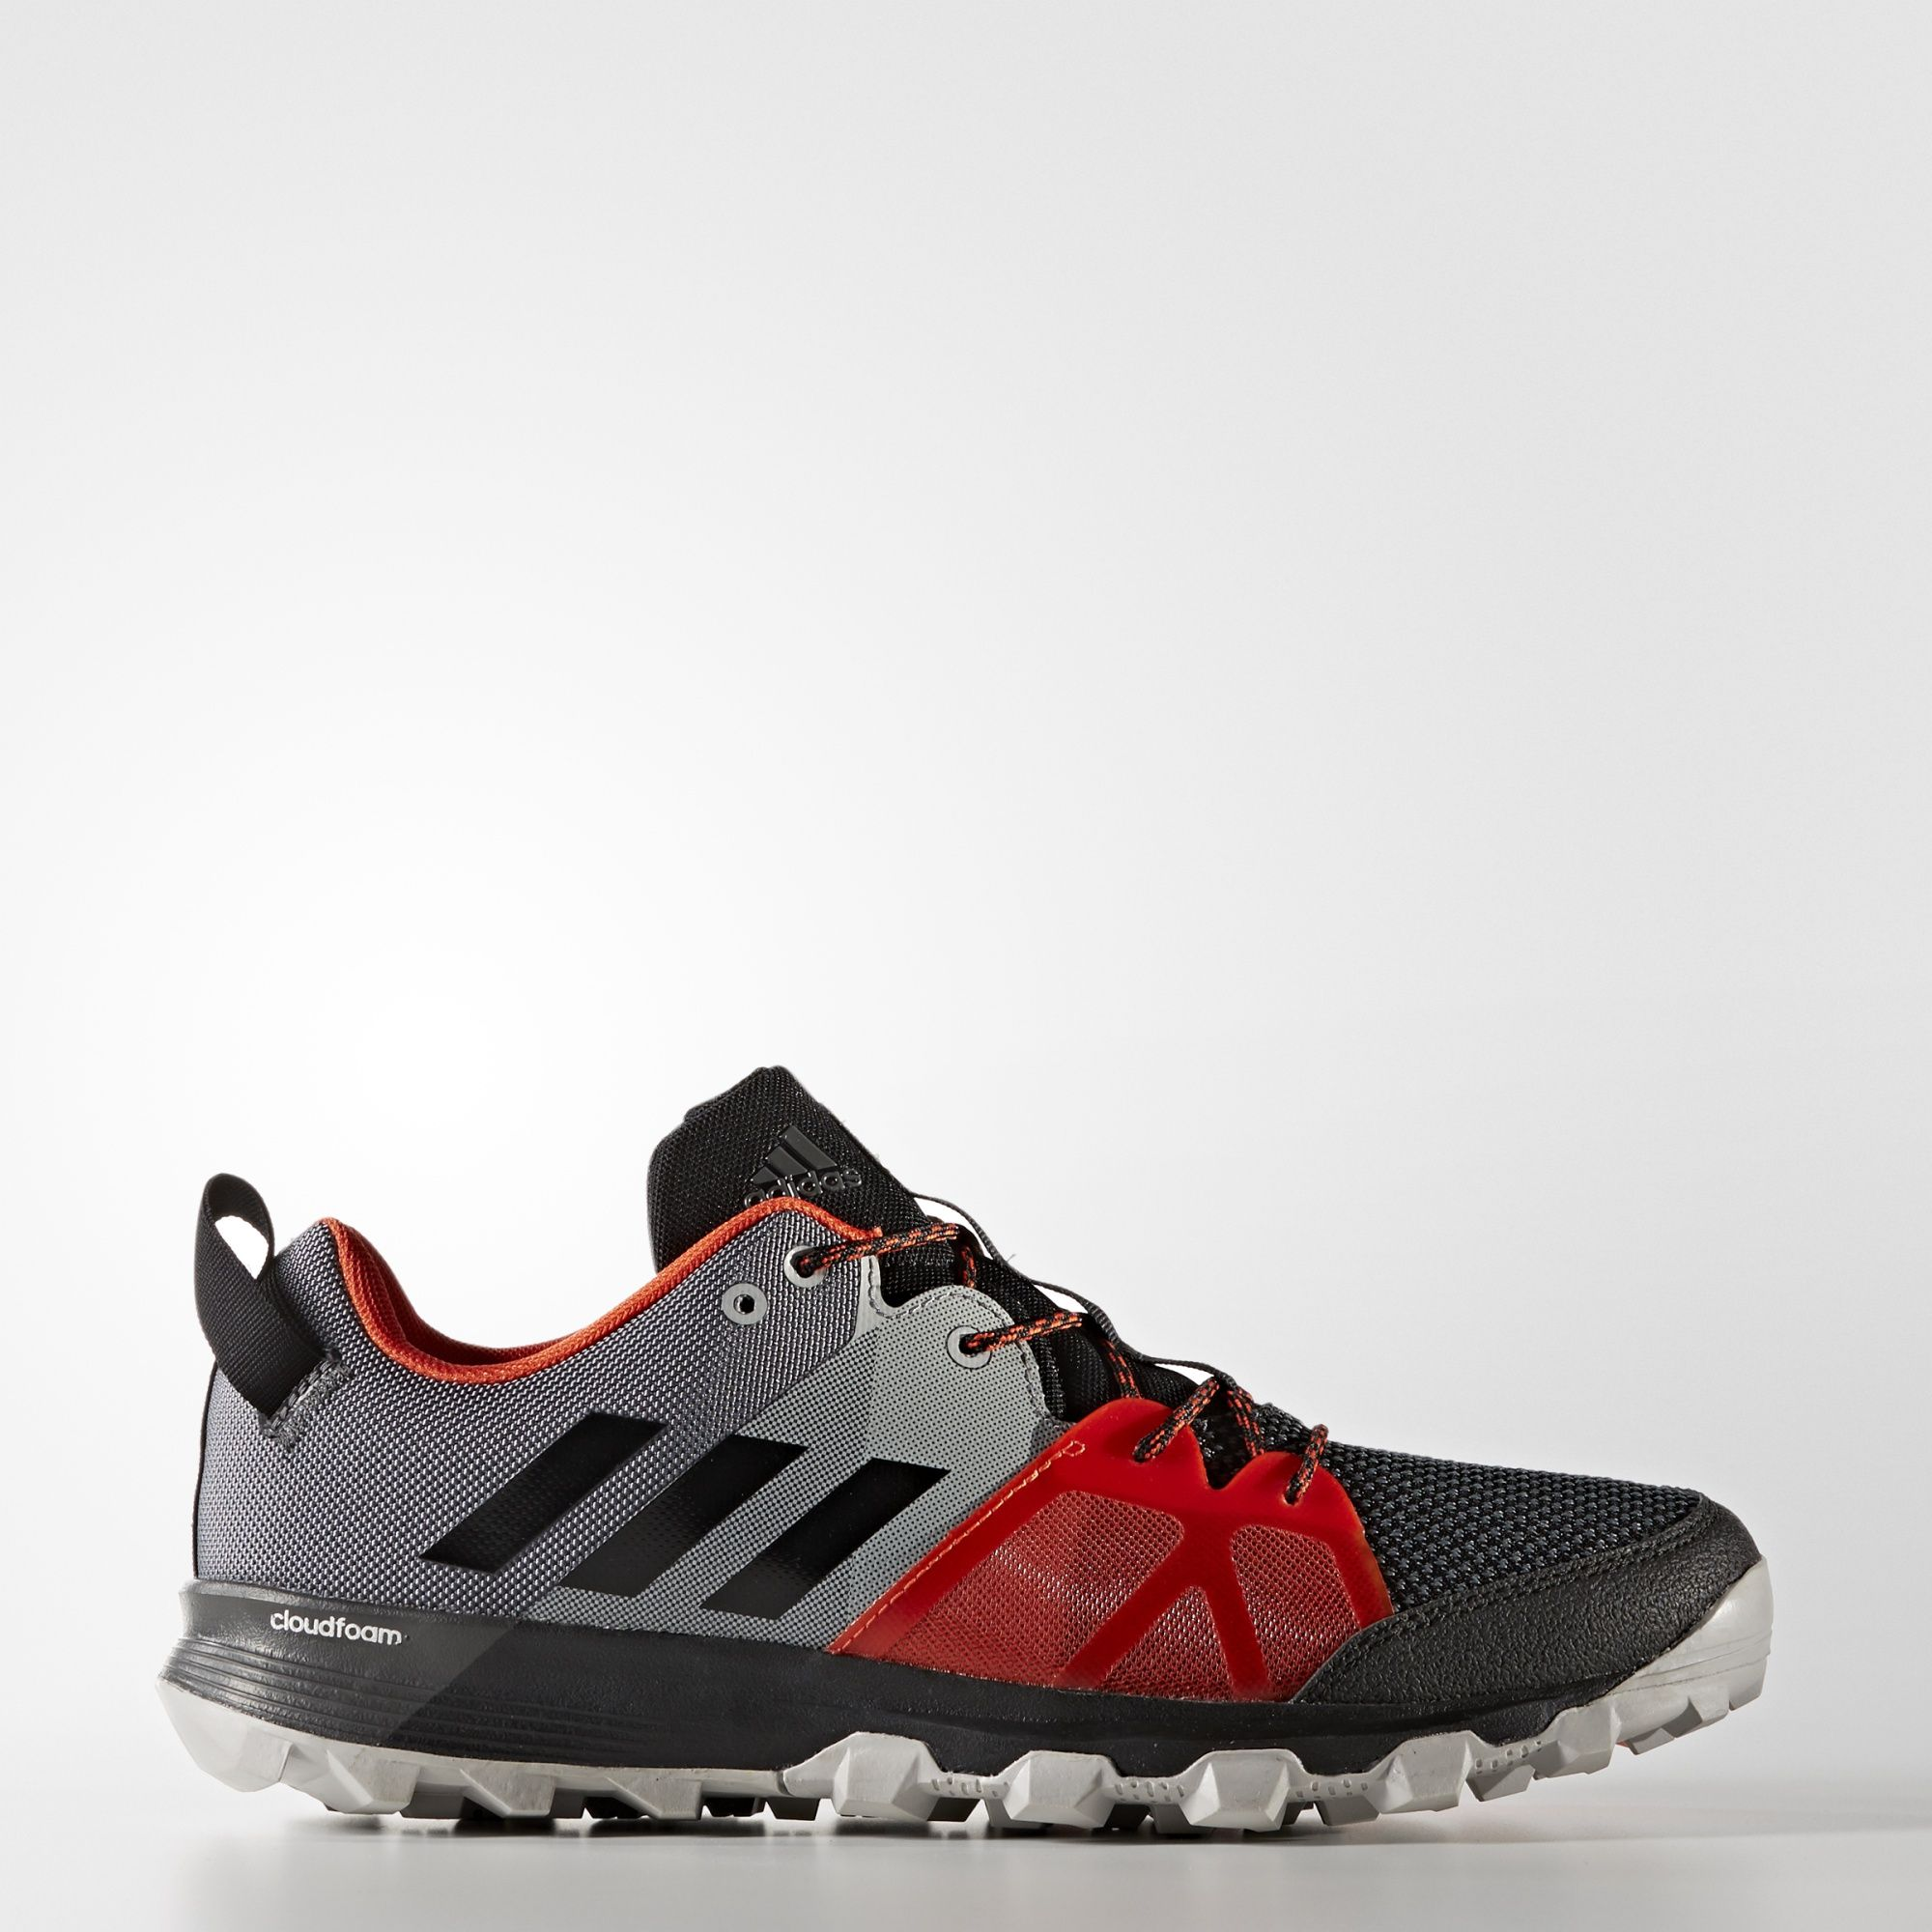 Adidas Kanadla 5 Lwather M Running Shoes New Arrival Yellow Black Mens Red